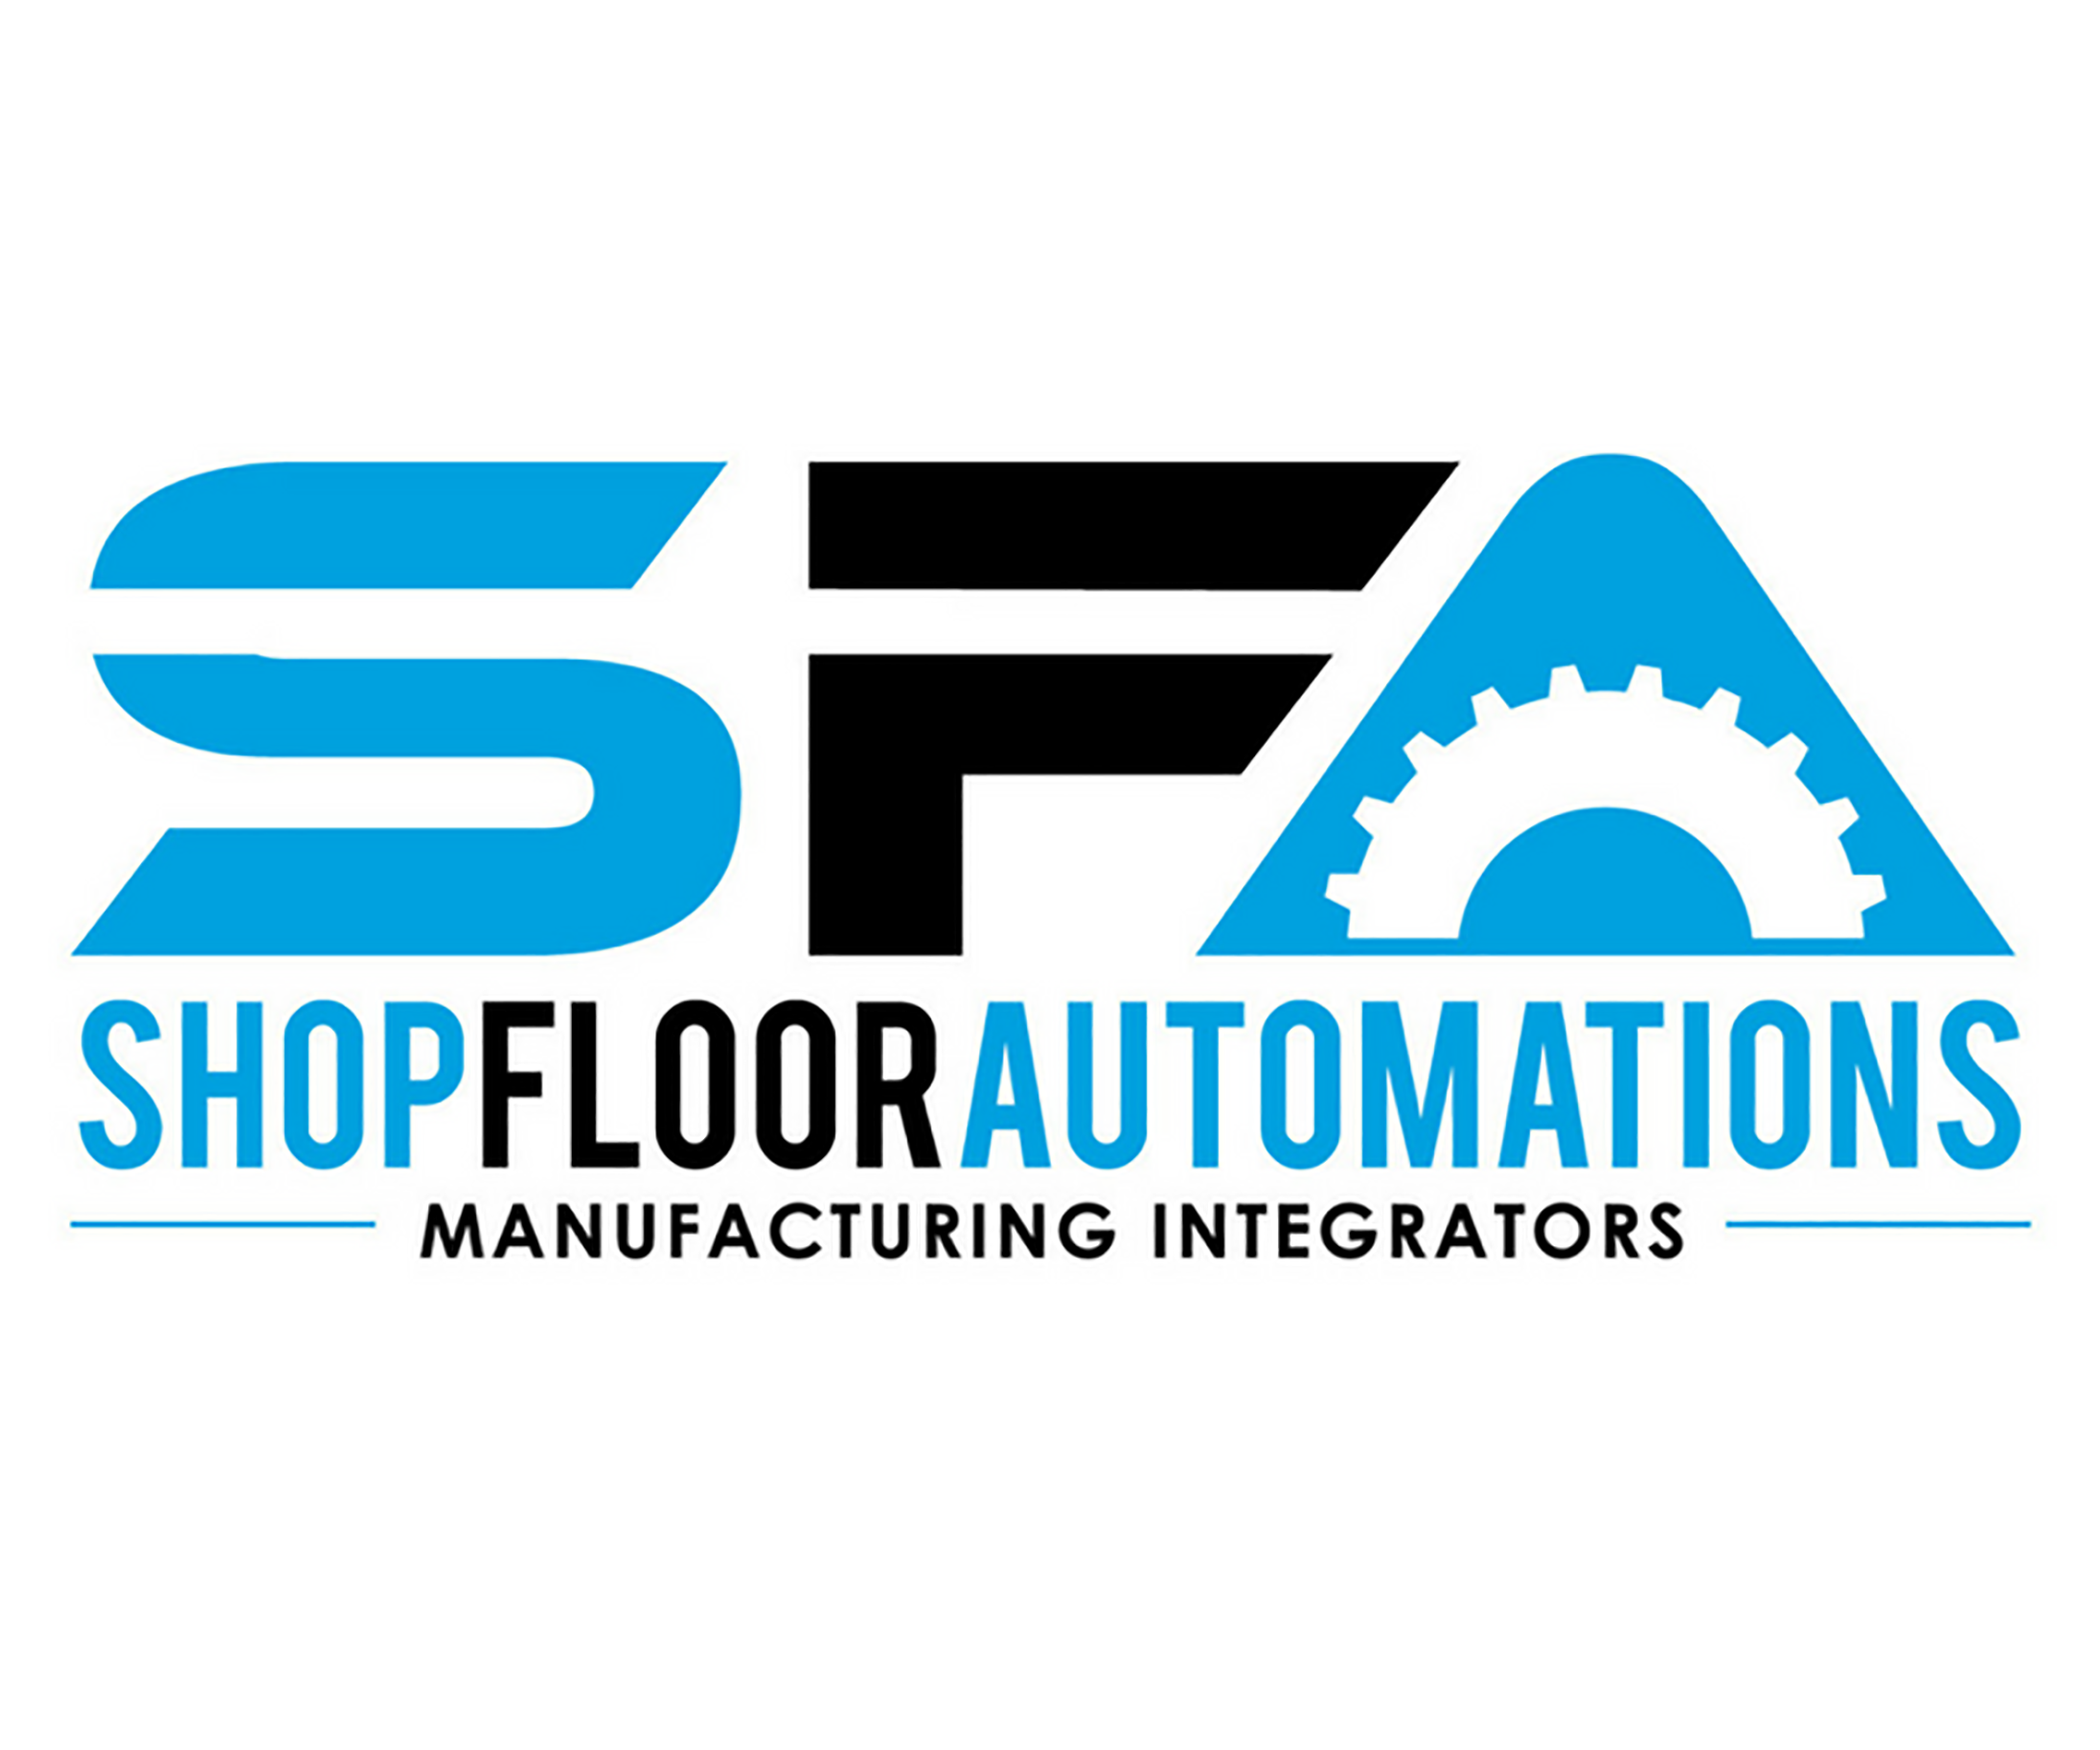 Shop Floor Automations' new logo